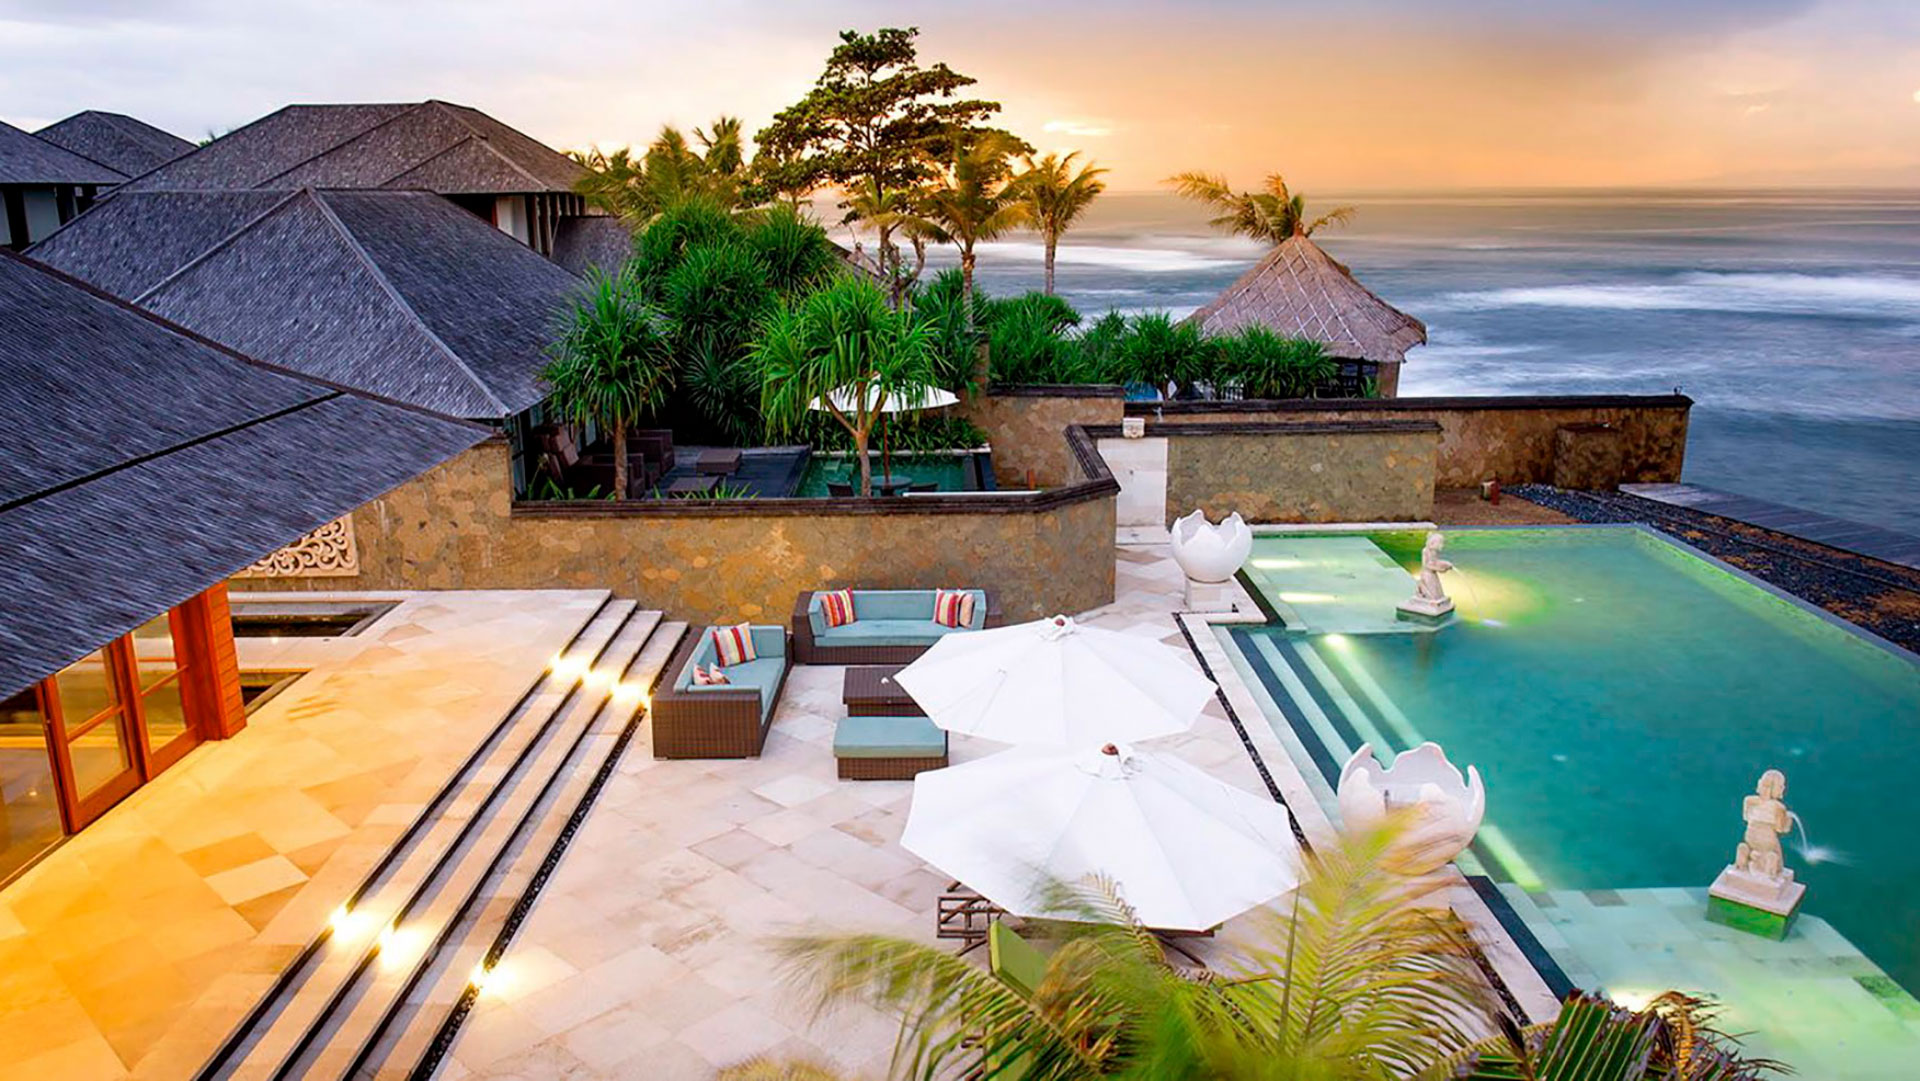 Best Party Villas in Bali